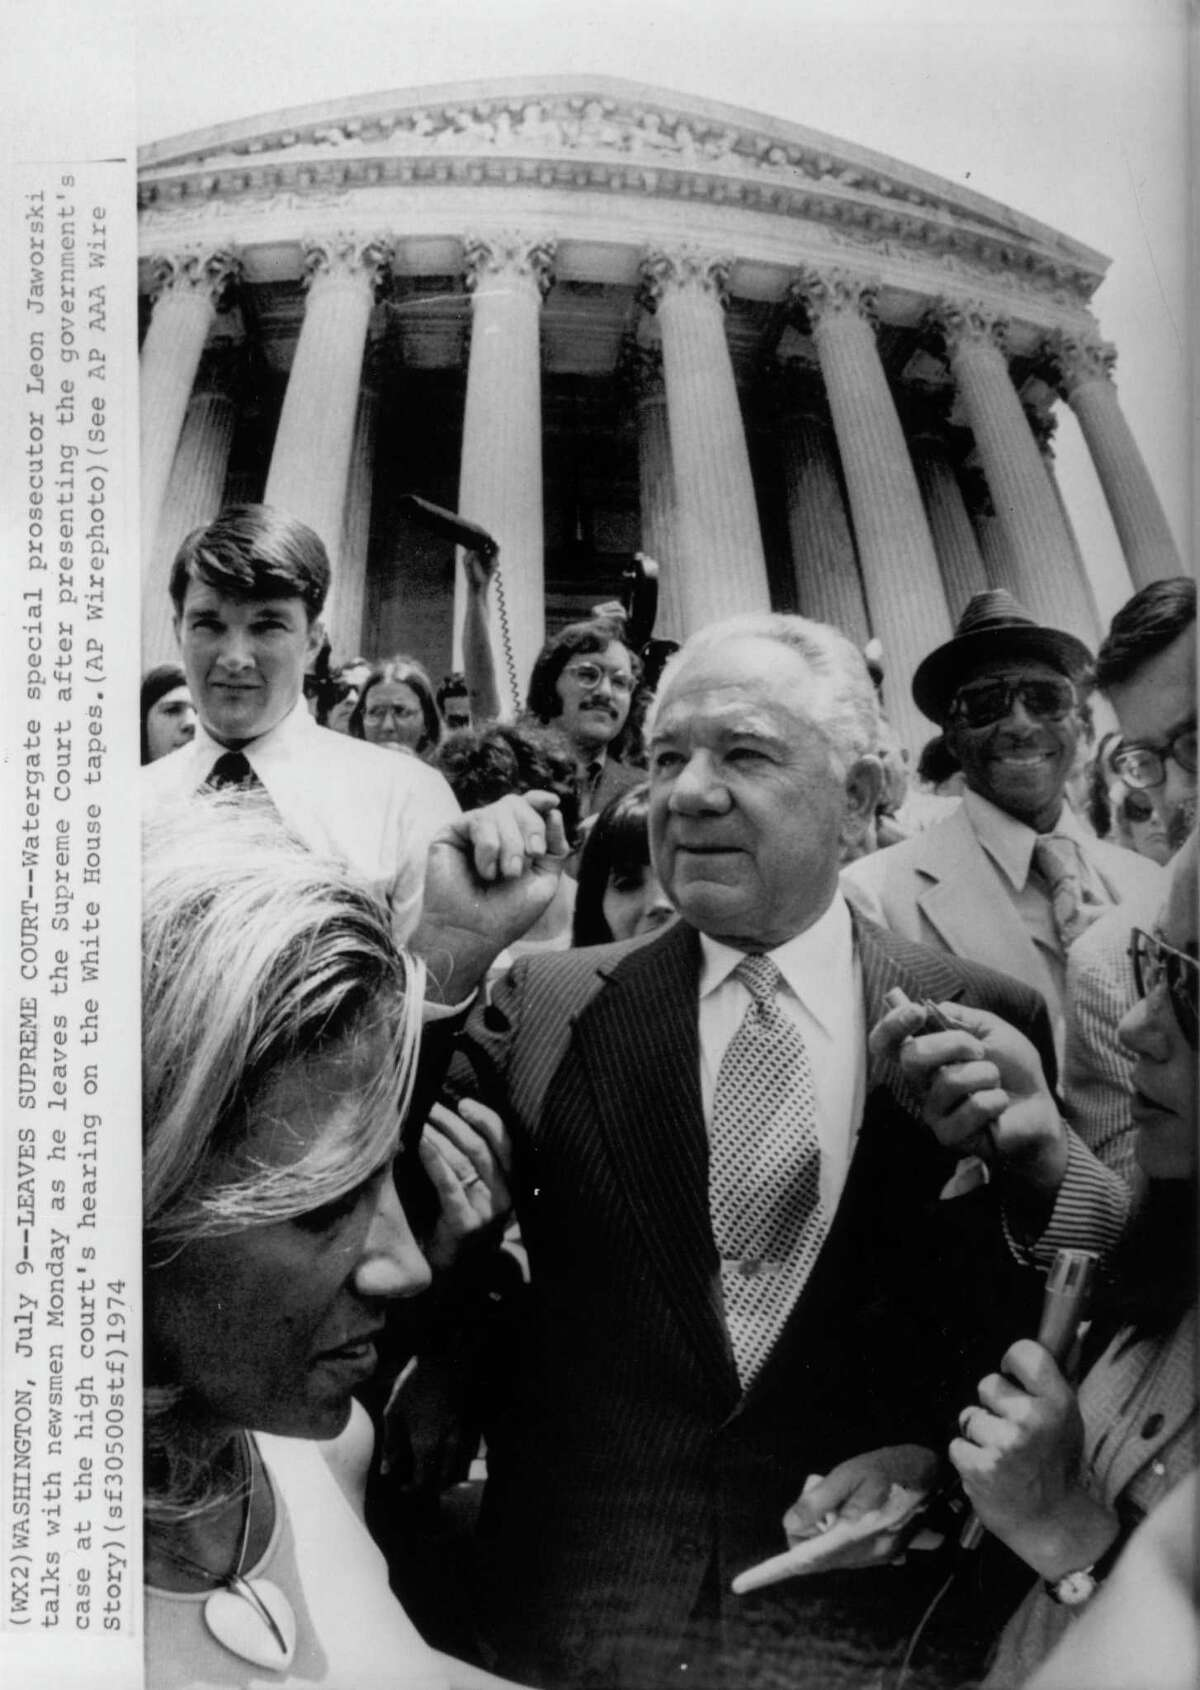 Watergate Special Prosecutor Leon Jaworski talks with reporters as he leaves the Supreme Court after presenting the government's case at the high court's hearing on the White House tapes.